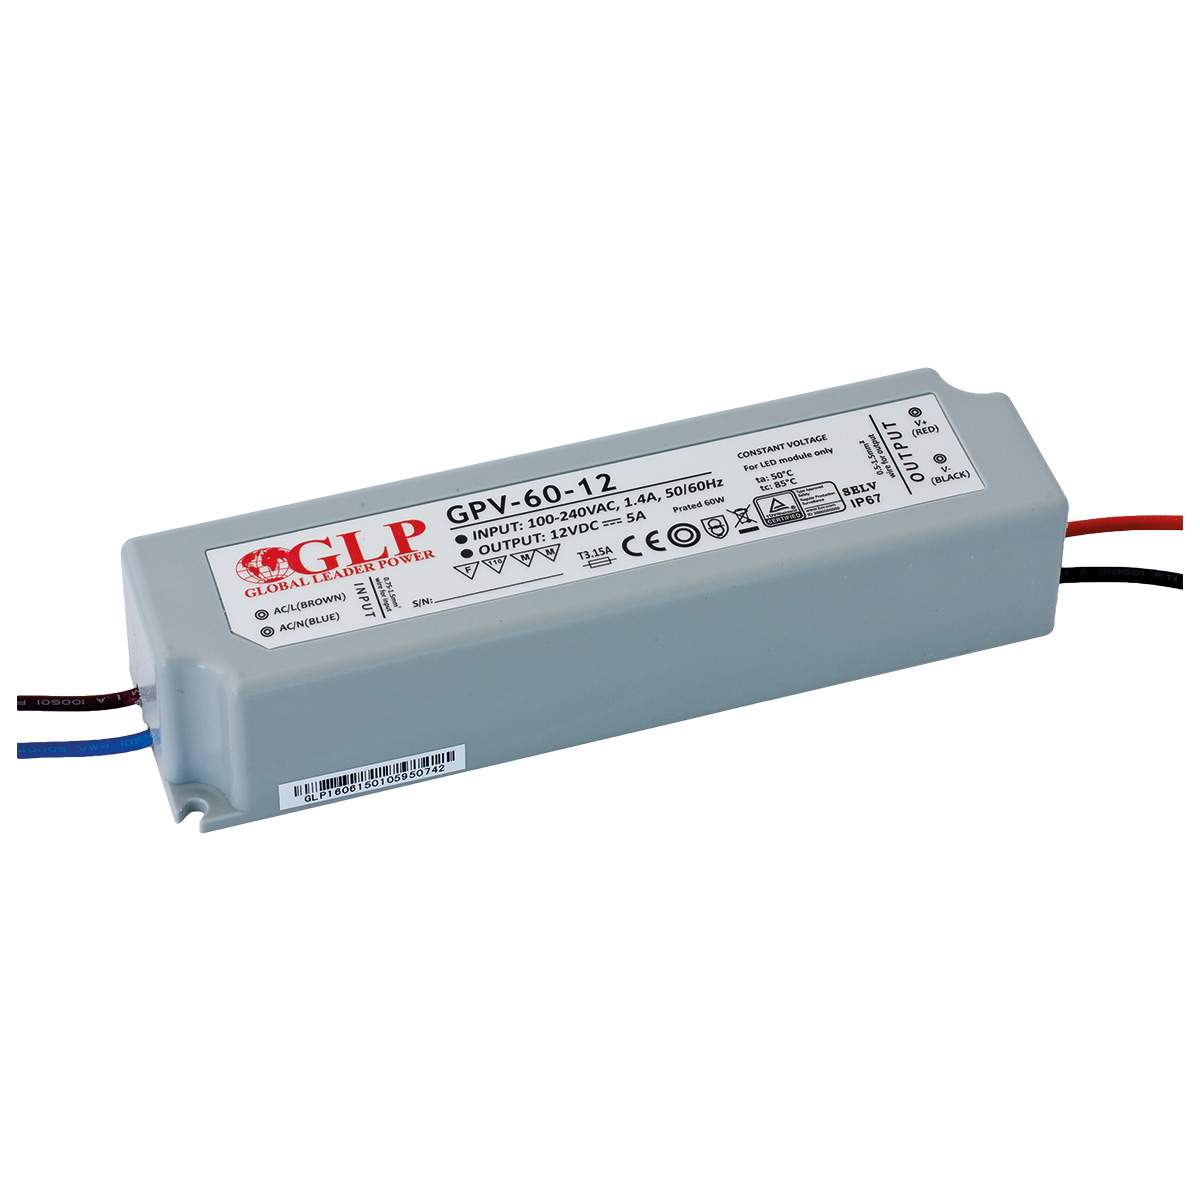 LED Toiteplokk LED Toiteplokk GLP POWER 12V DC GPV-60-12  60W  IP67